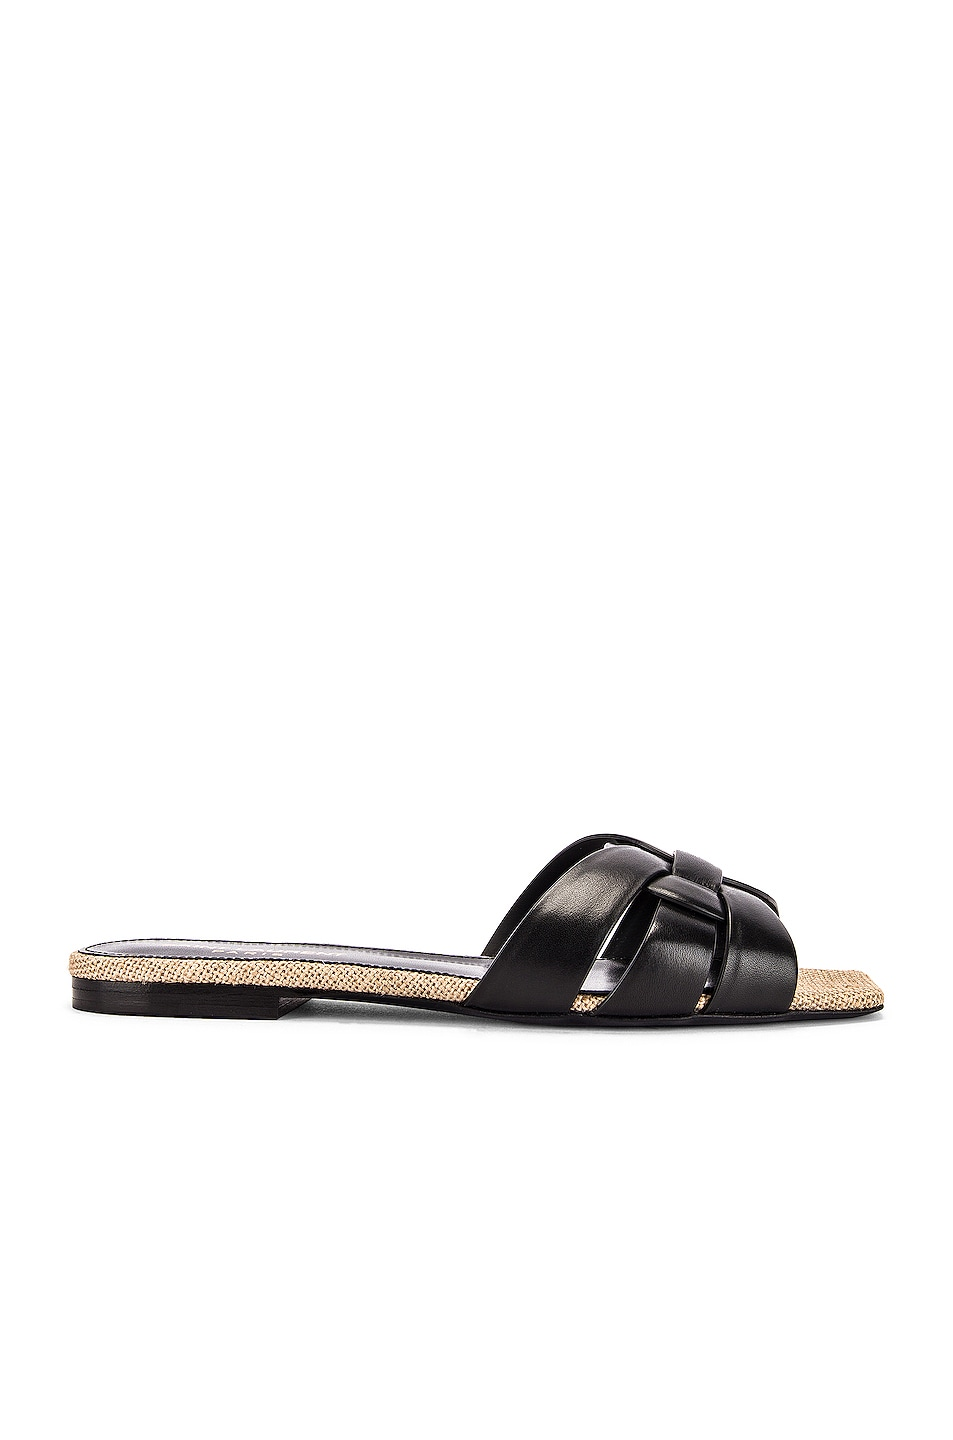 Image 1 of Saint Laurent Leather Slides in Black